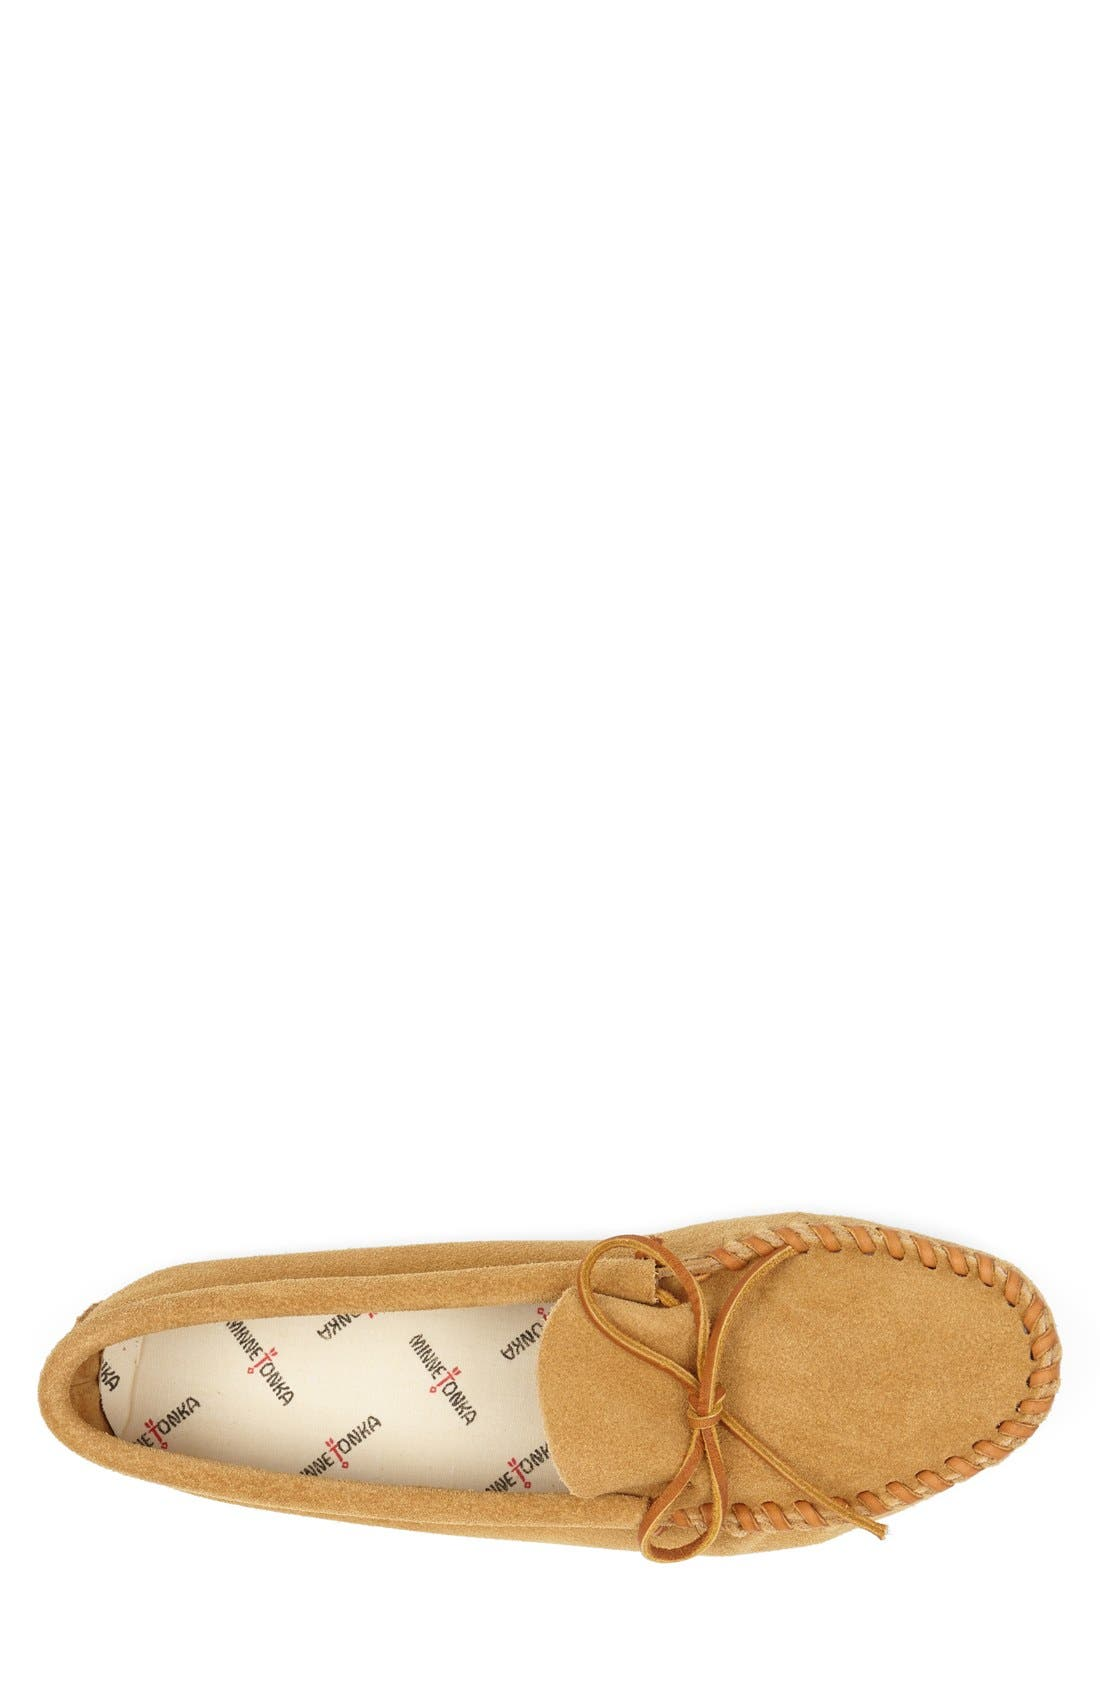 Alternate Image 3  - Minnetonka Suede Moccasin